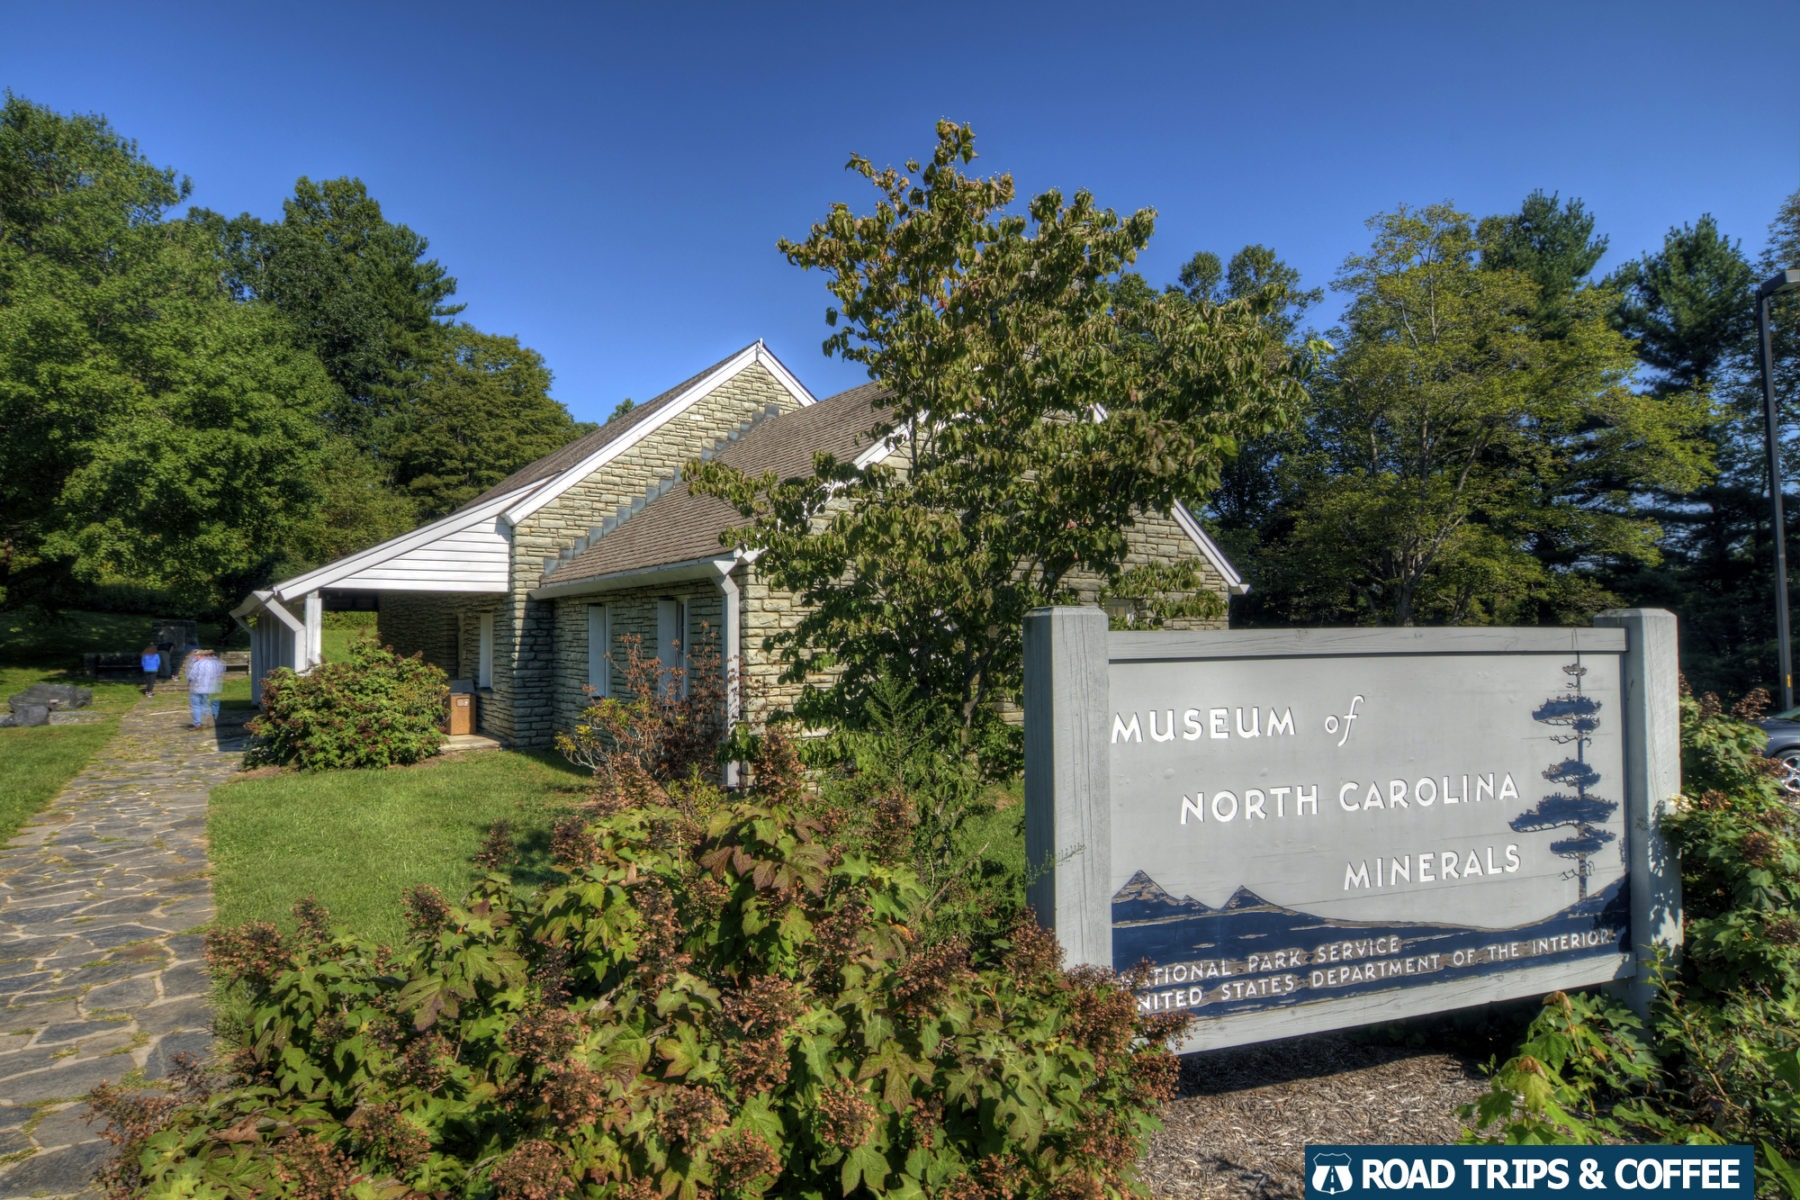 A sign marks the entrance to the Museum of North Carolina Minerals on the Blue Ridge Parkway in North Carolina